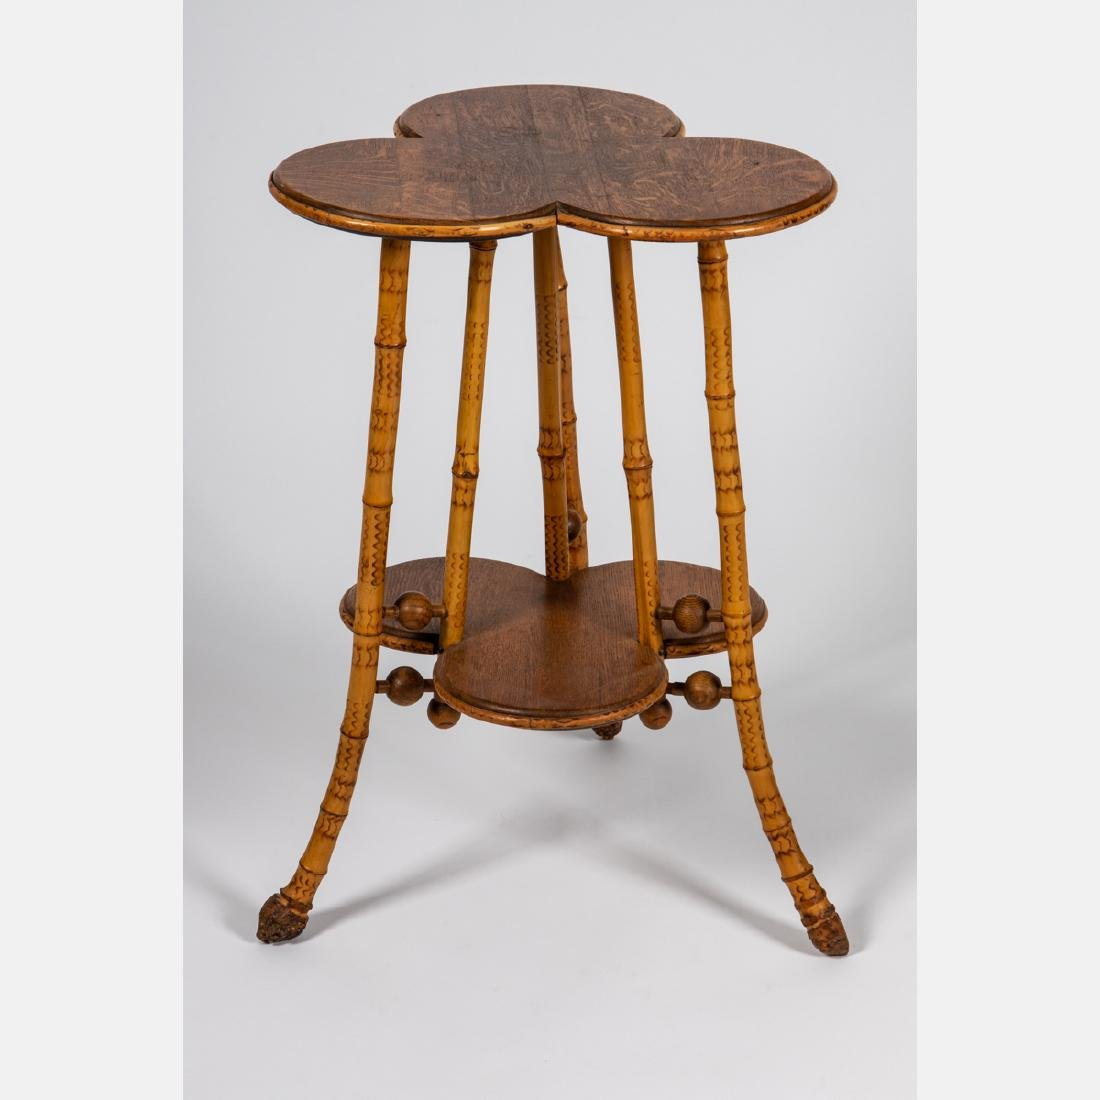 A Victorian Bamboo Two Tiered Stand, 19th Century.